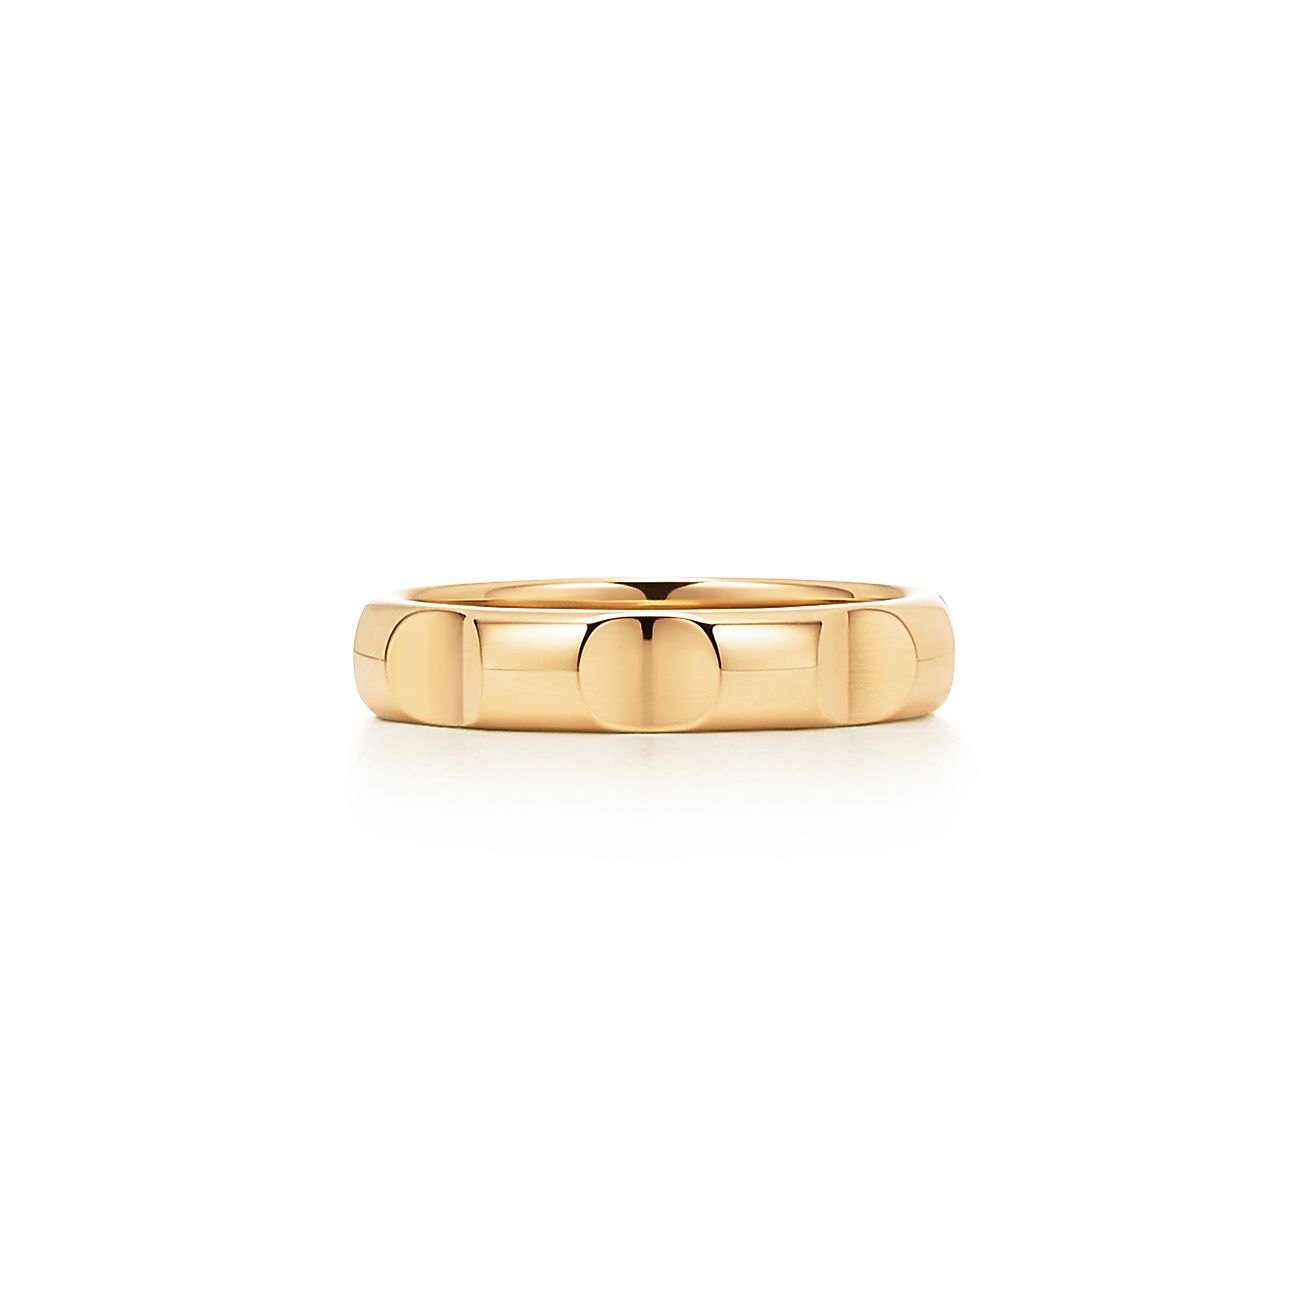 Palomas Groove narrow ring in 18k gold, 4 mm wide - Size 11 1/2 Tiffany & Co.